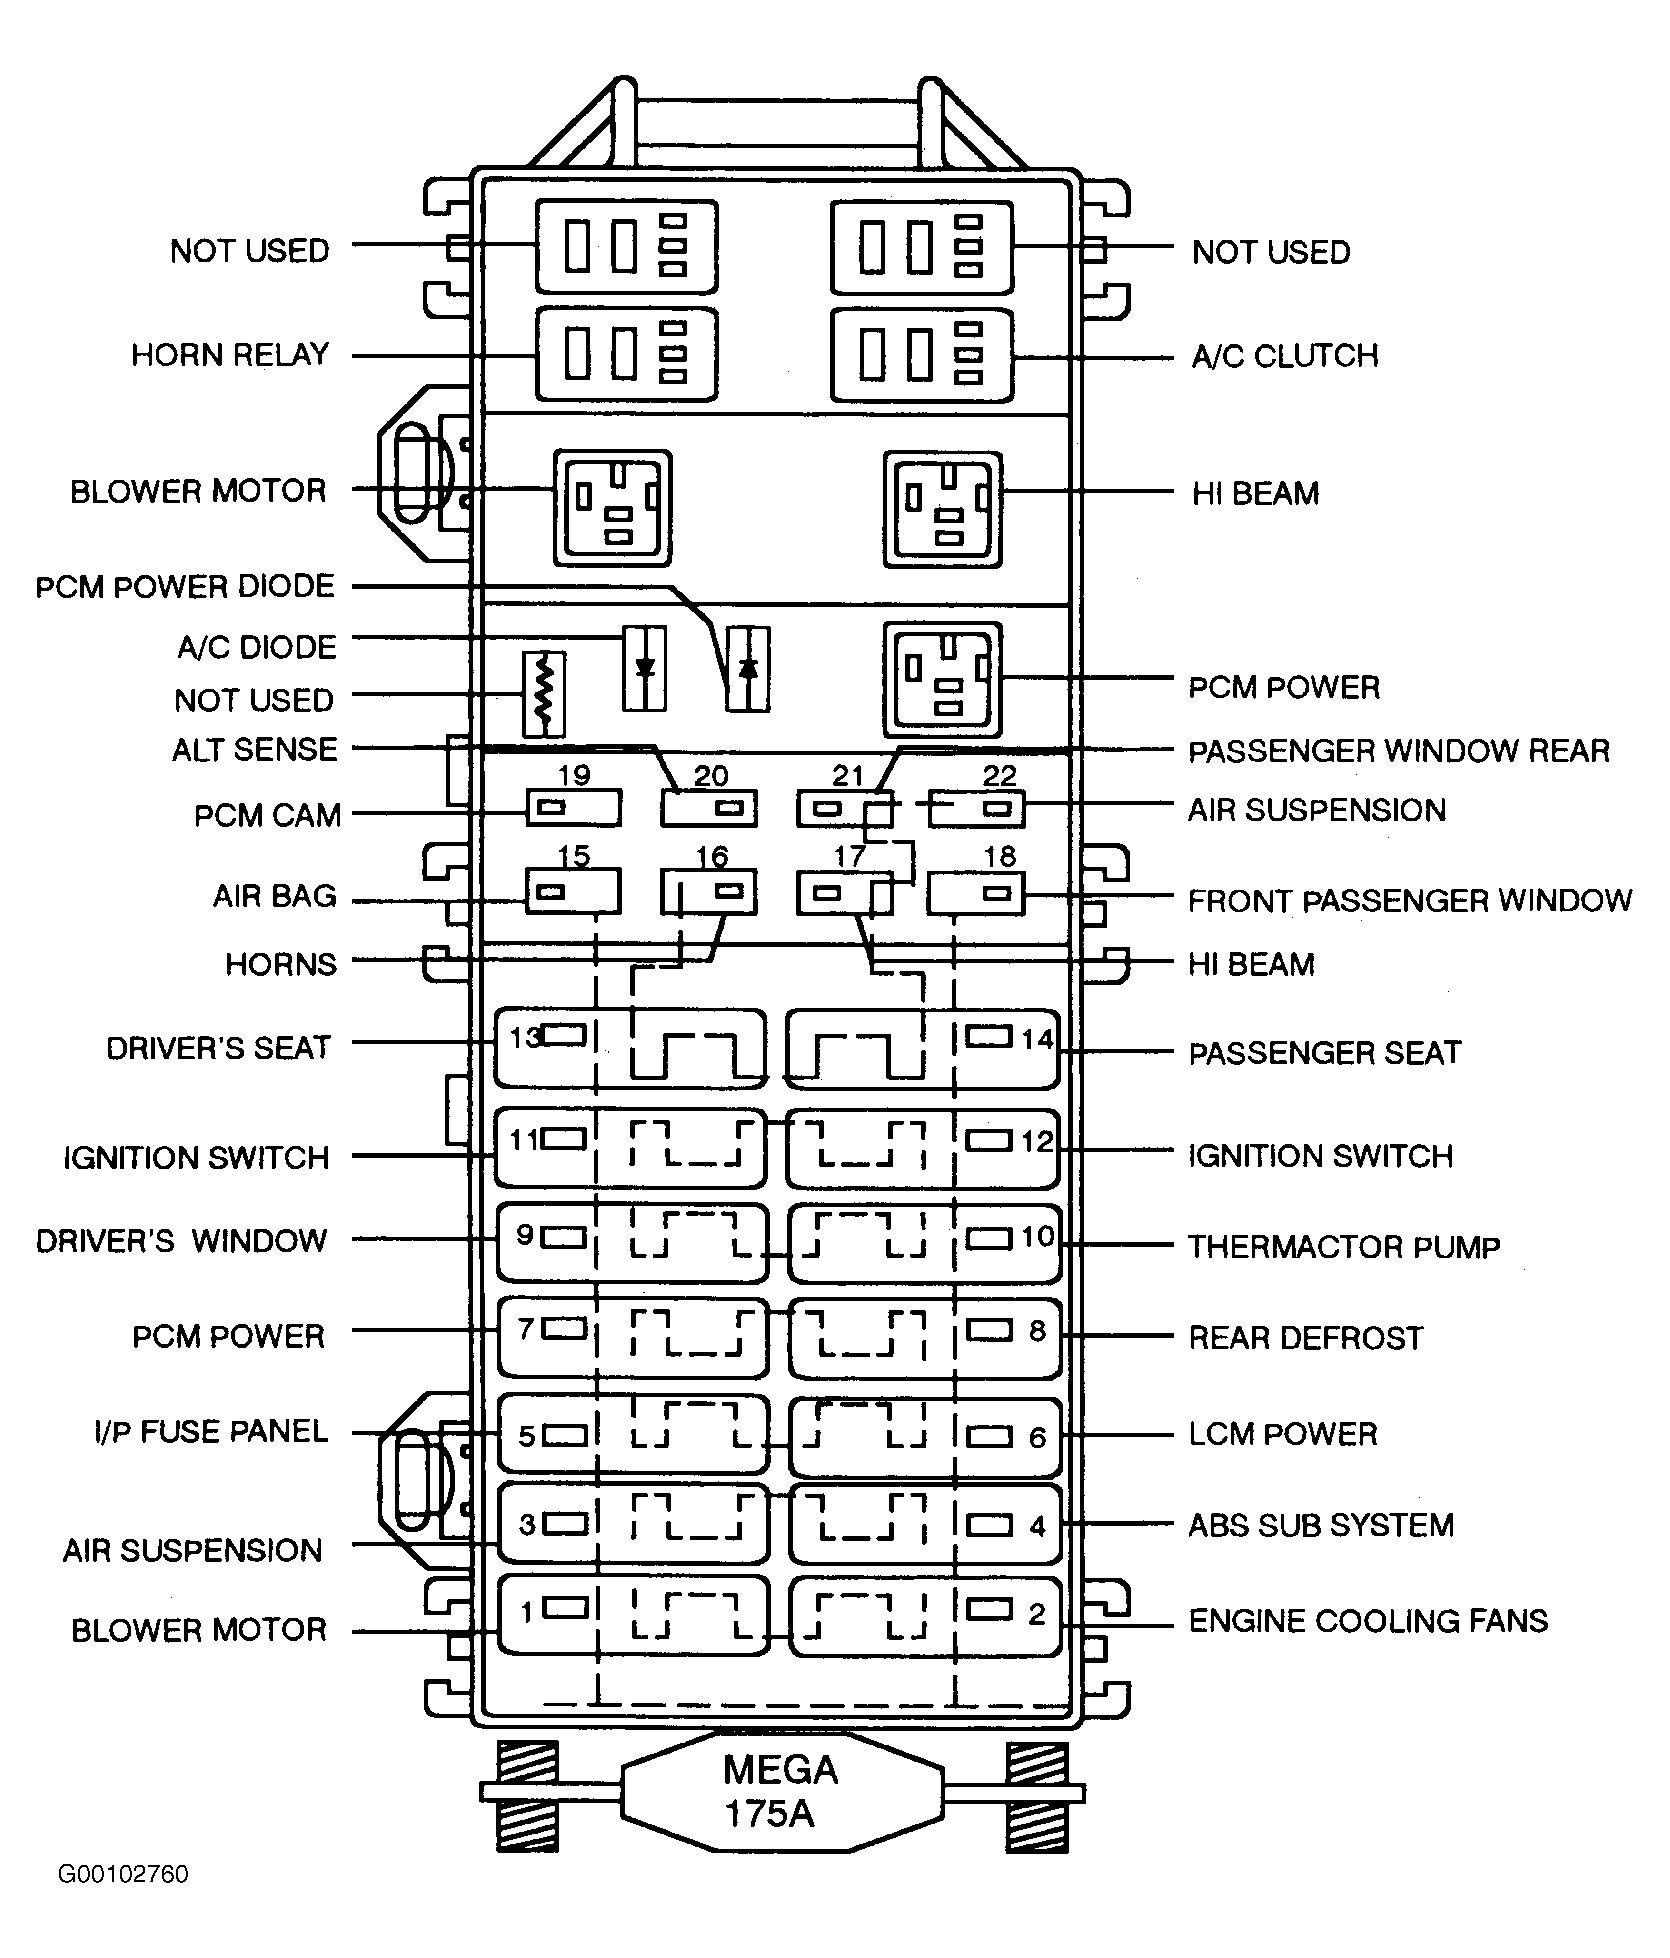 small resolution of 1998 lincoln continental fuse panel diagram wiring diagram database 2001 lincoln navigator fuse box 1998 lincoln